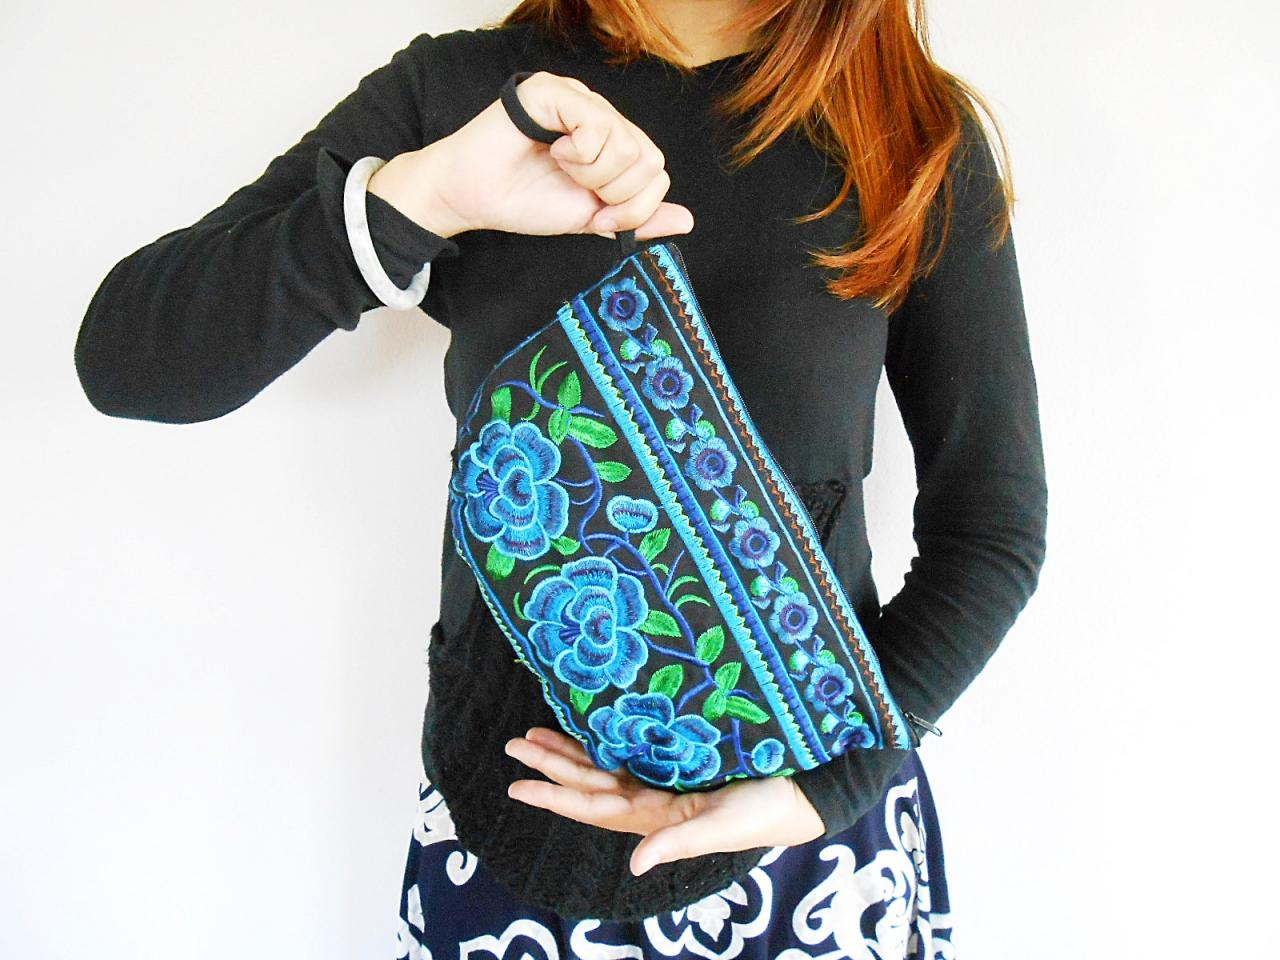 BLUE HALF MOON Clutch Bag, Handmade Embroidered w/ Black Fabric Chinese Hmong Hilltribe in Thailand. (KP1054-BLBK)